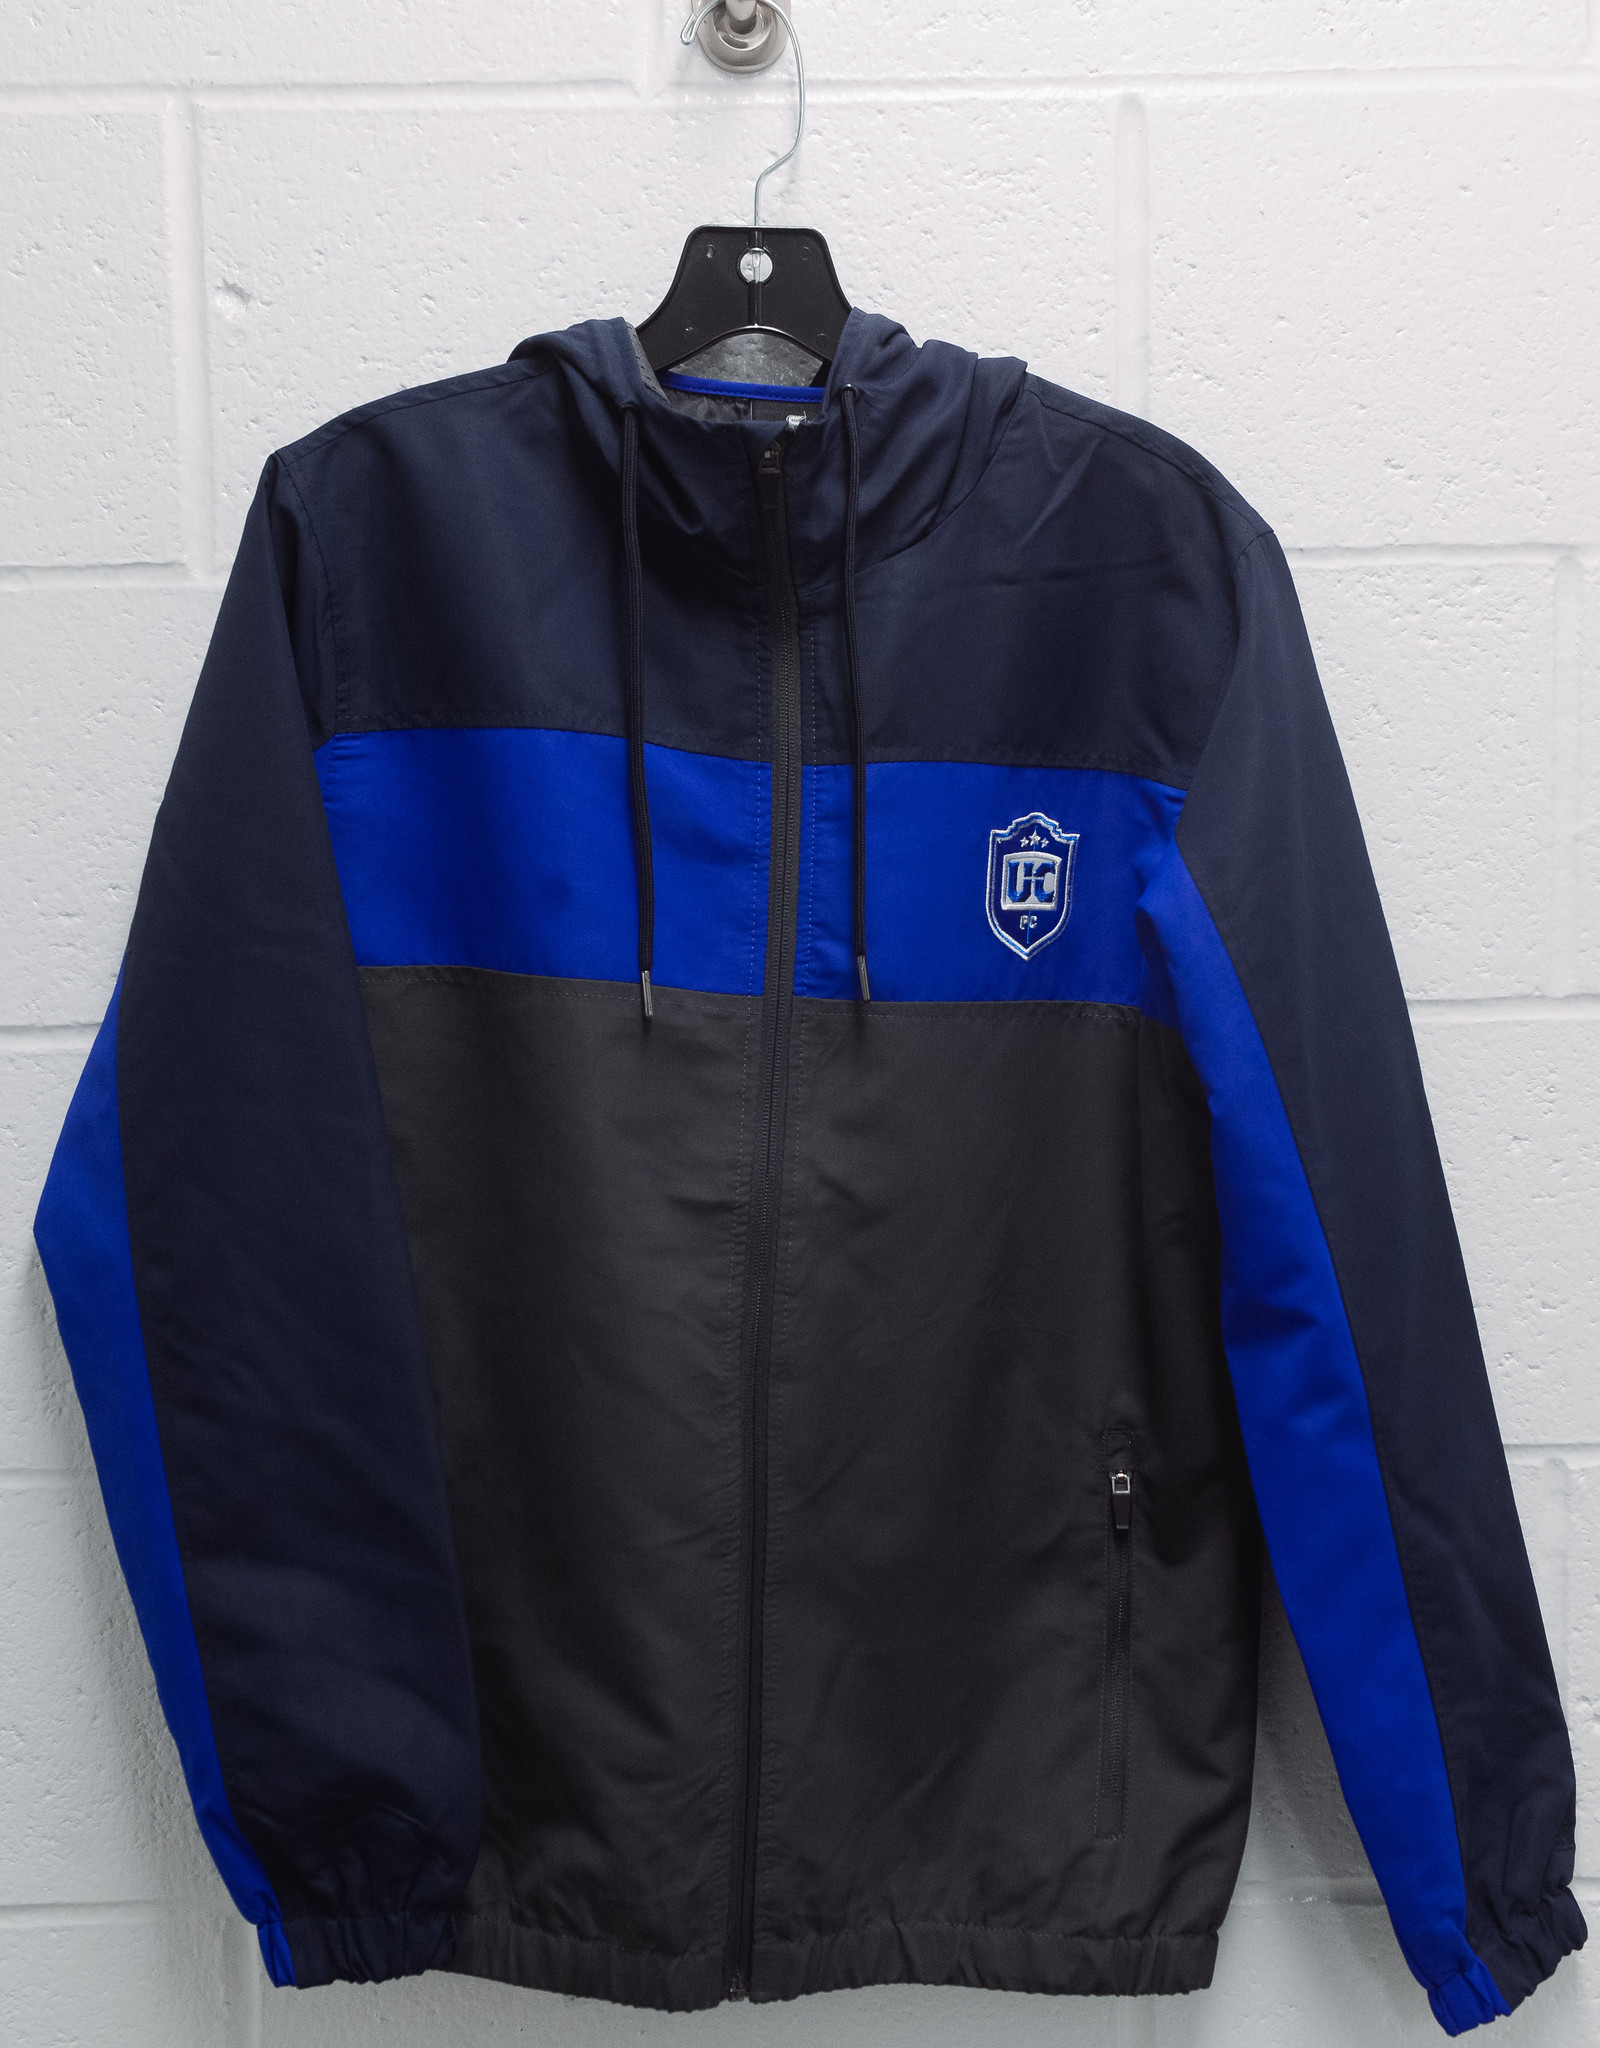 Colosseum Brockman Jacket w/ UCFC Crest